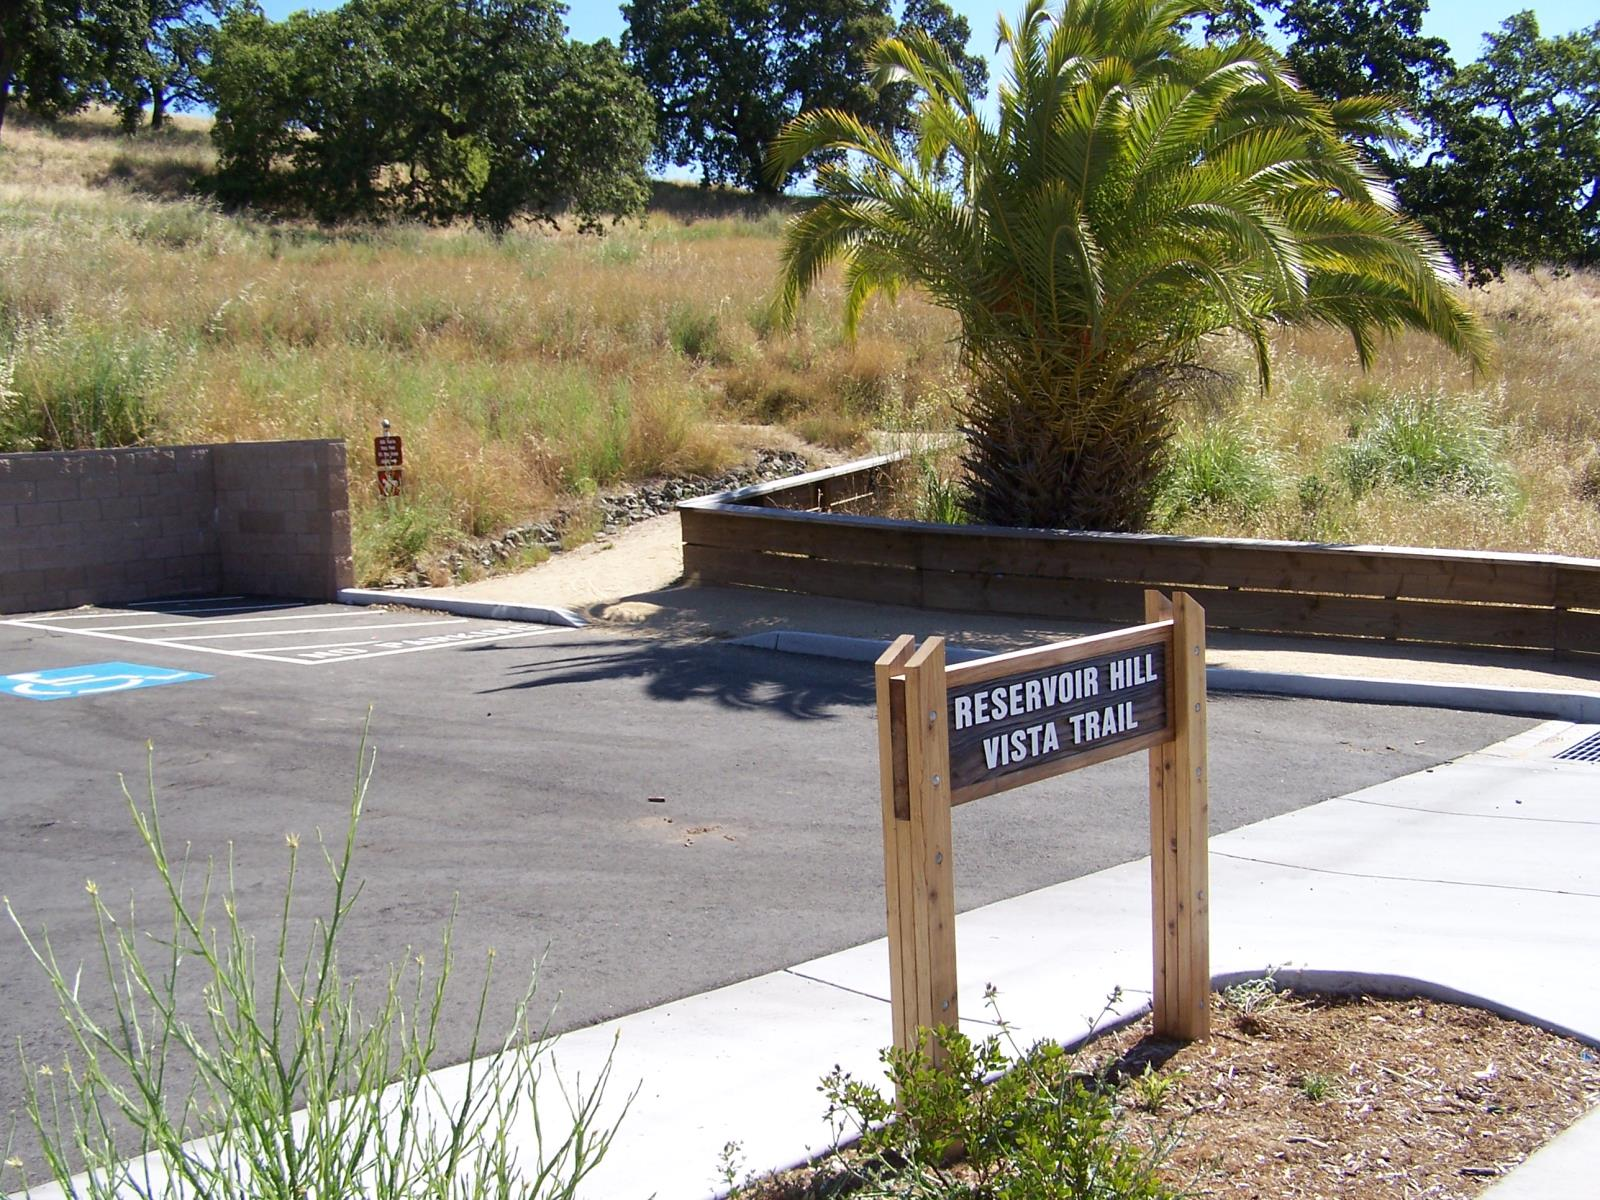 Picture of Hamilton Reservoir Hill Trailhead